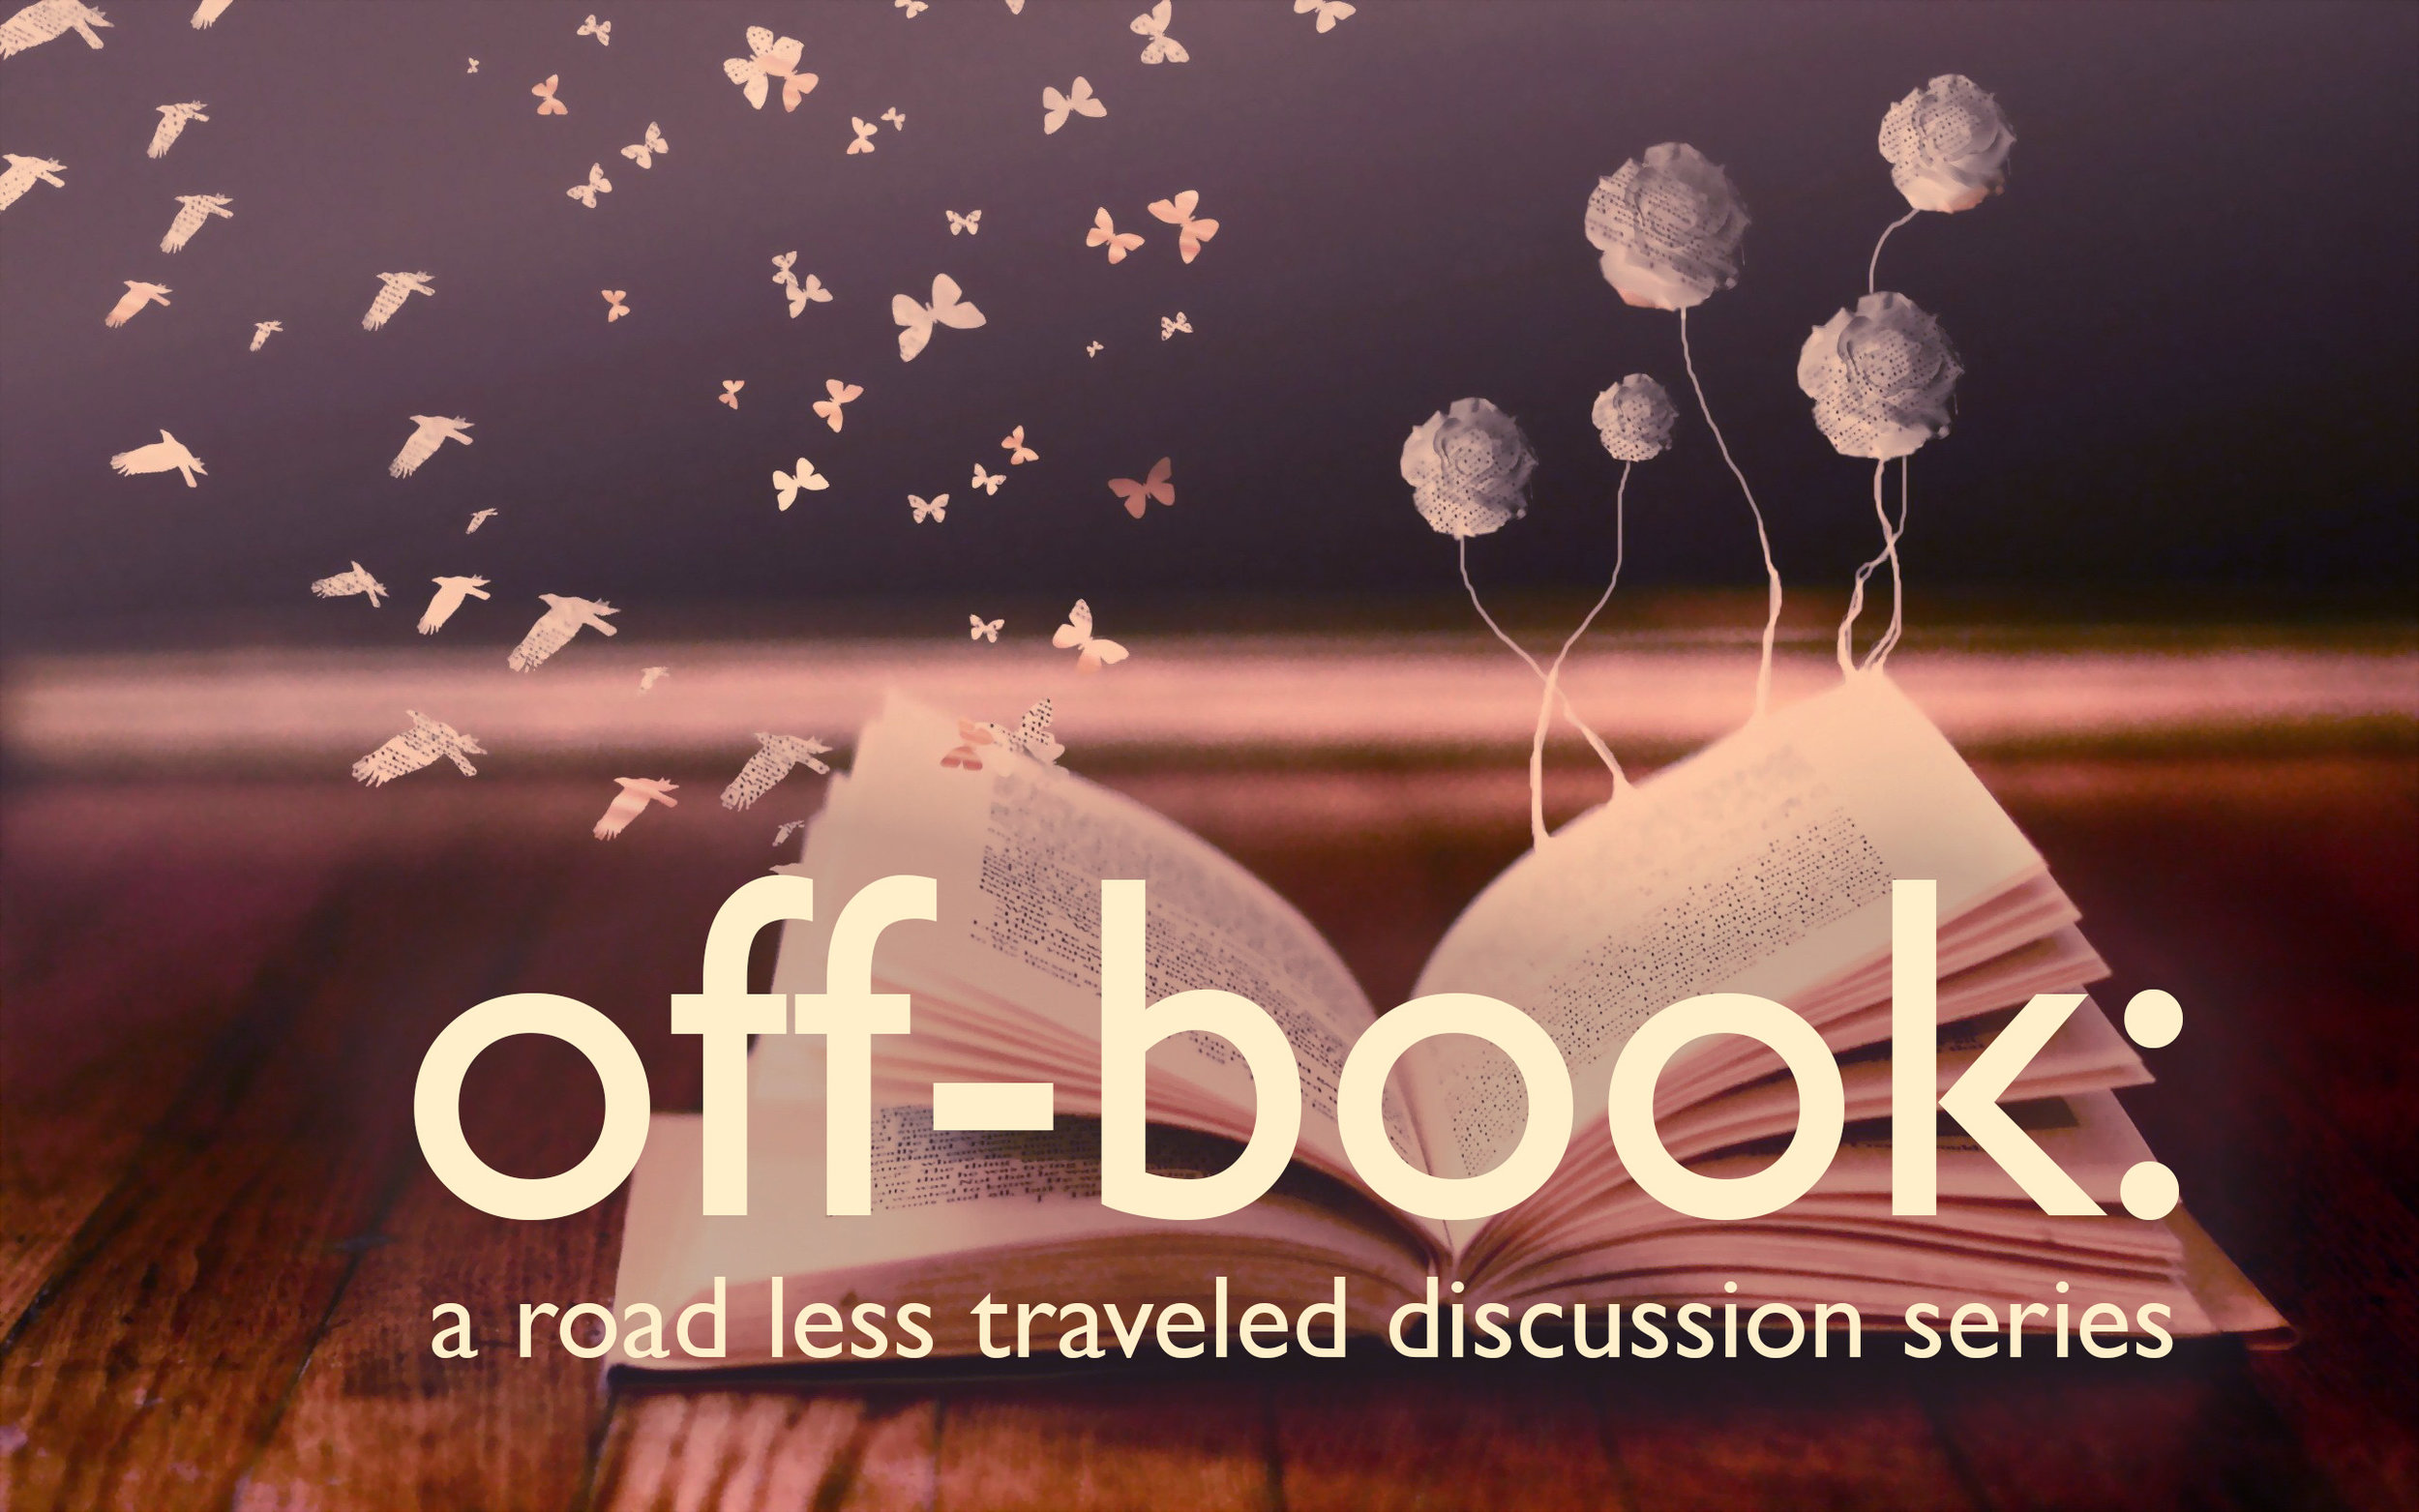 Off-Book invites you to join us for a discussion about the plays we produce with moderator Michelle Holden & special guests. -